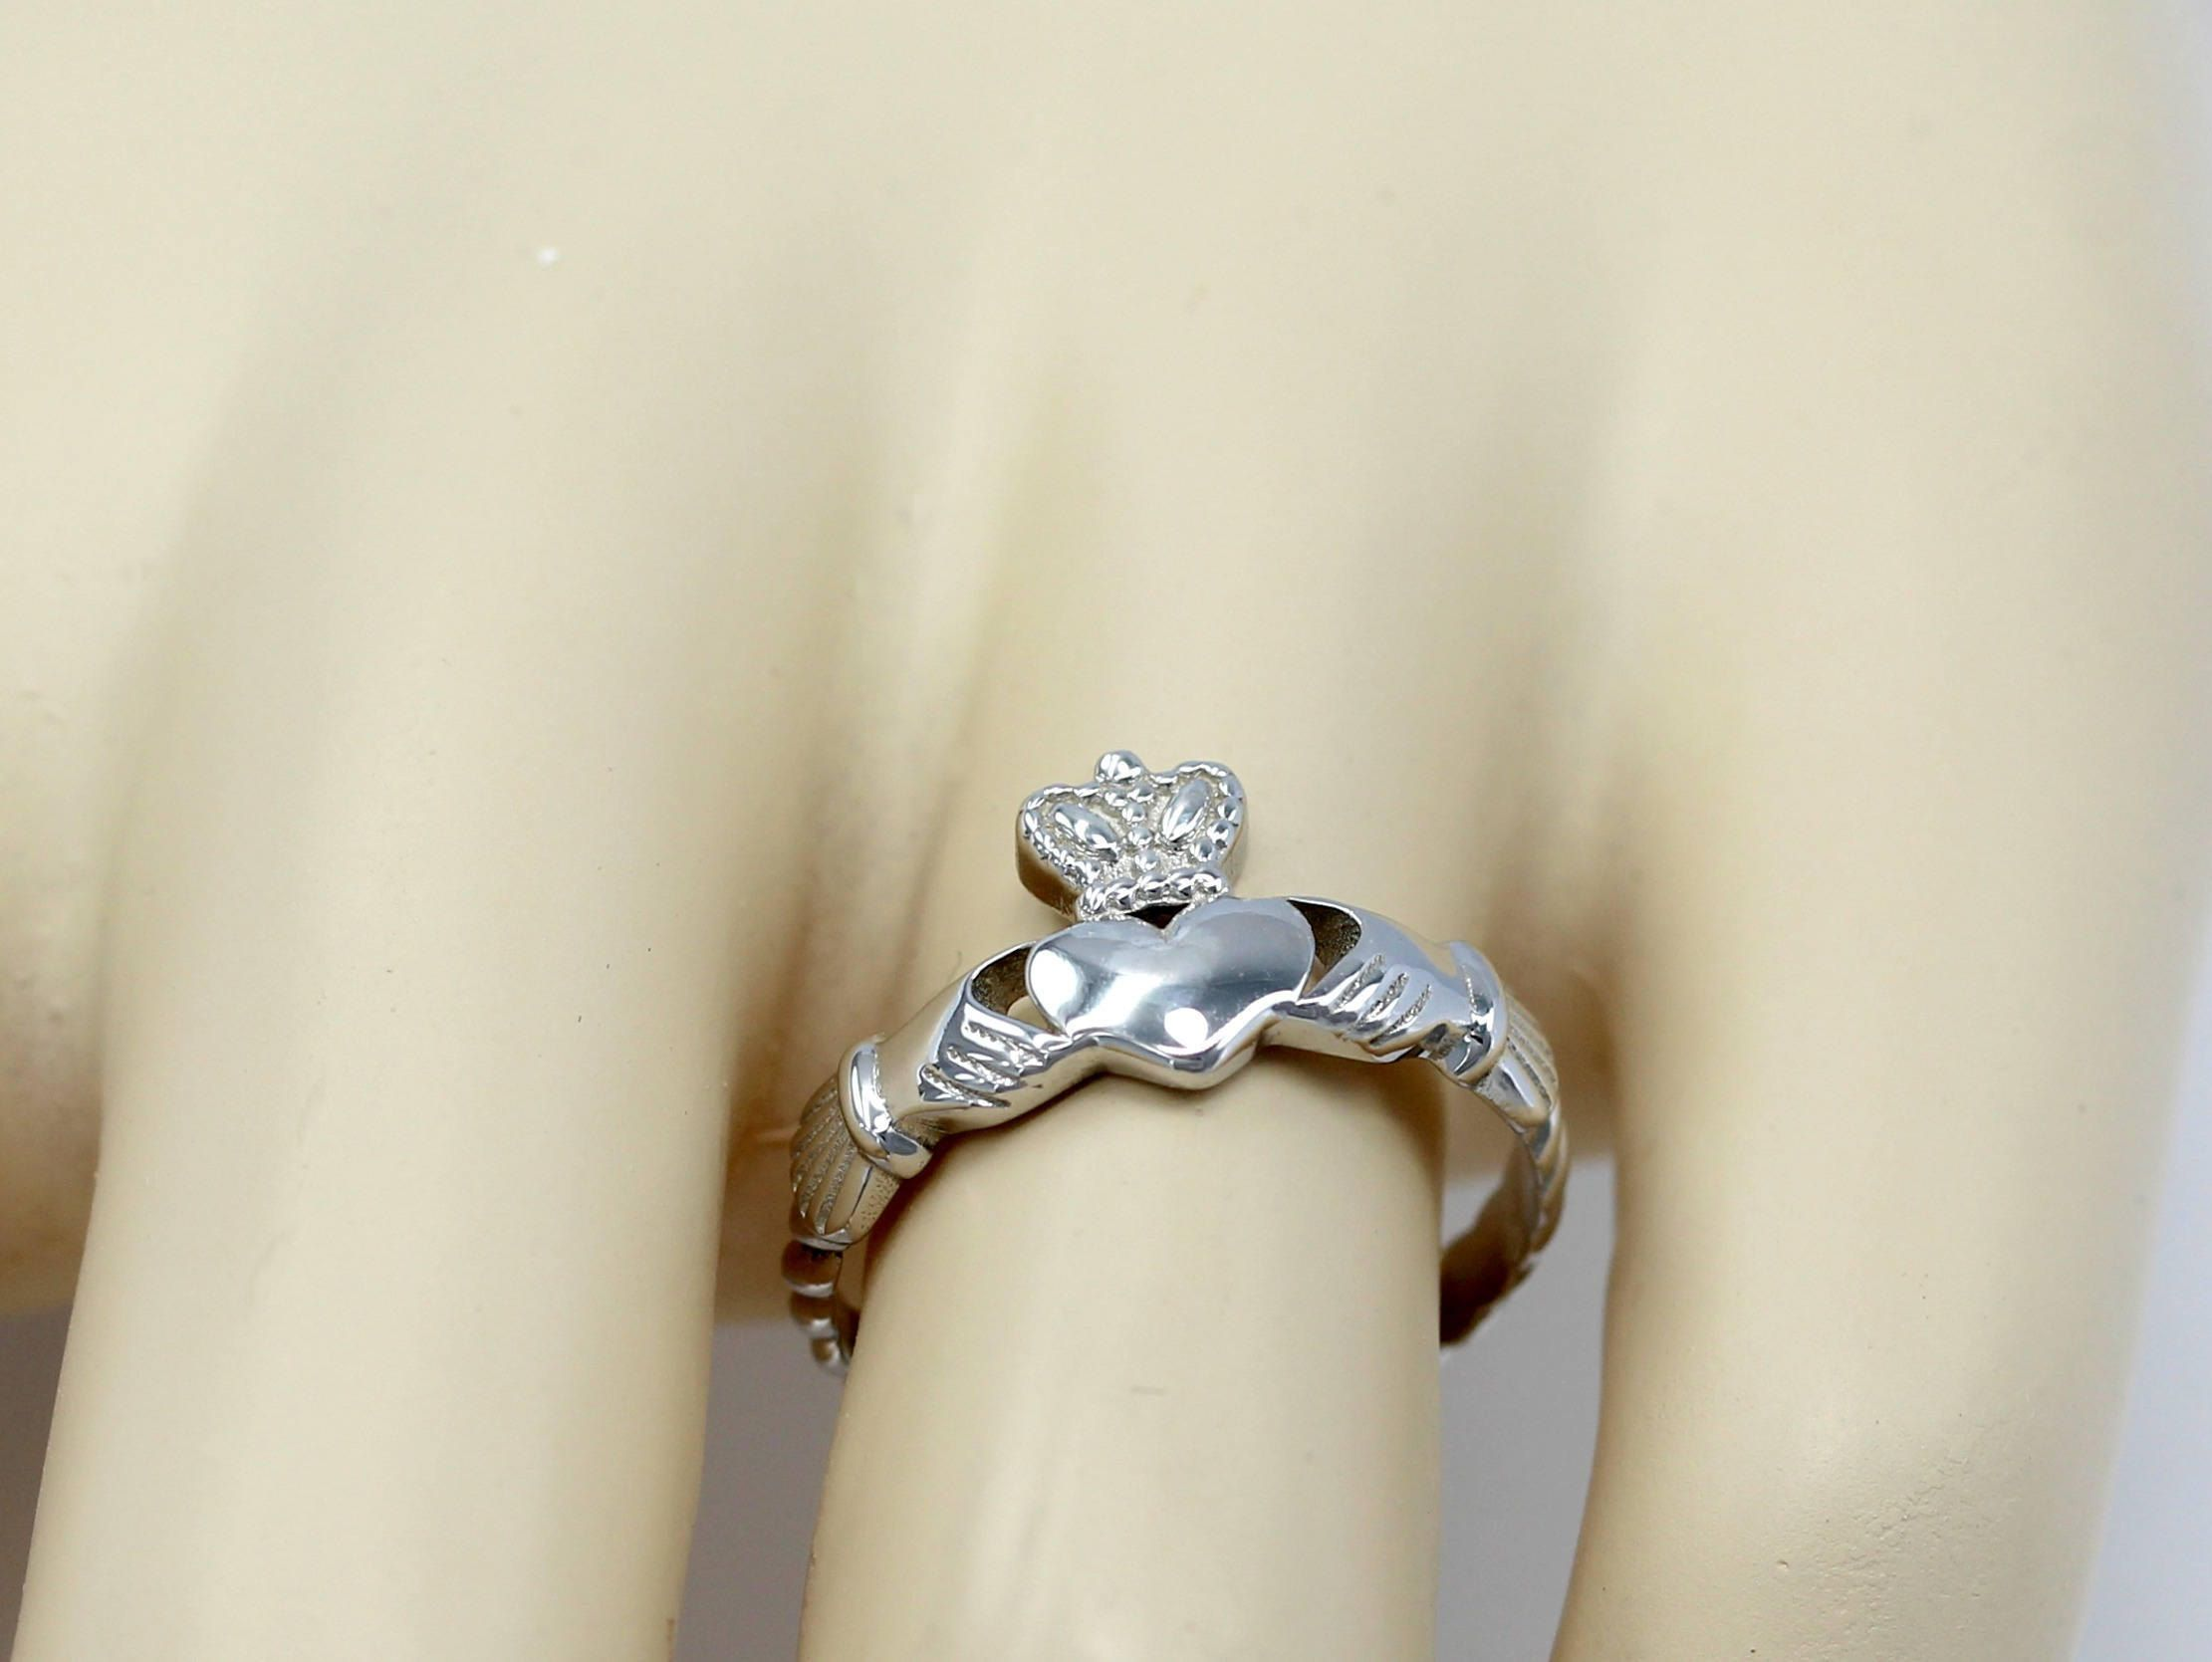 Look - Claddagh irish ring heart design concepts video